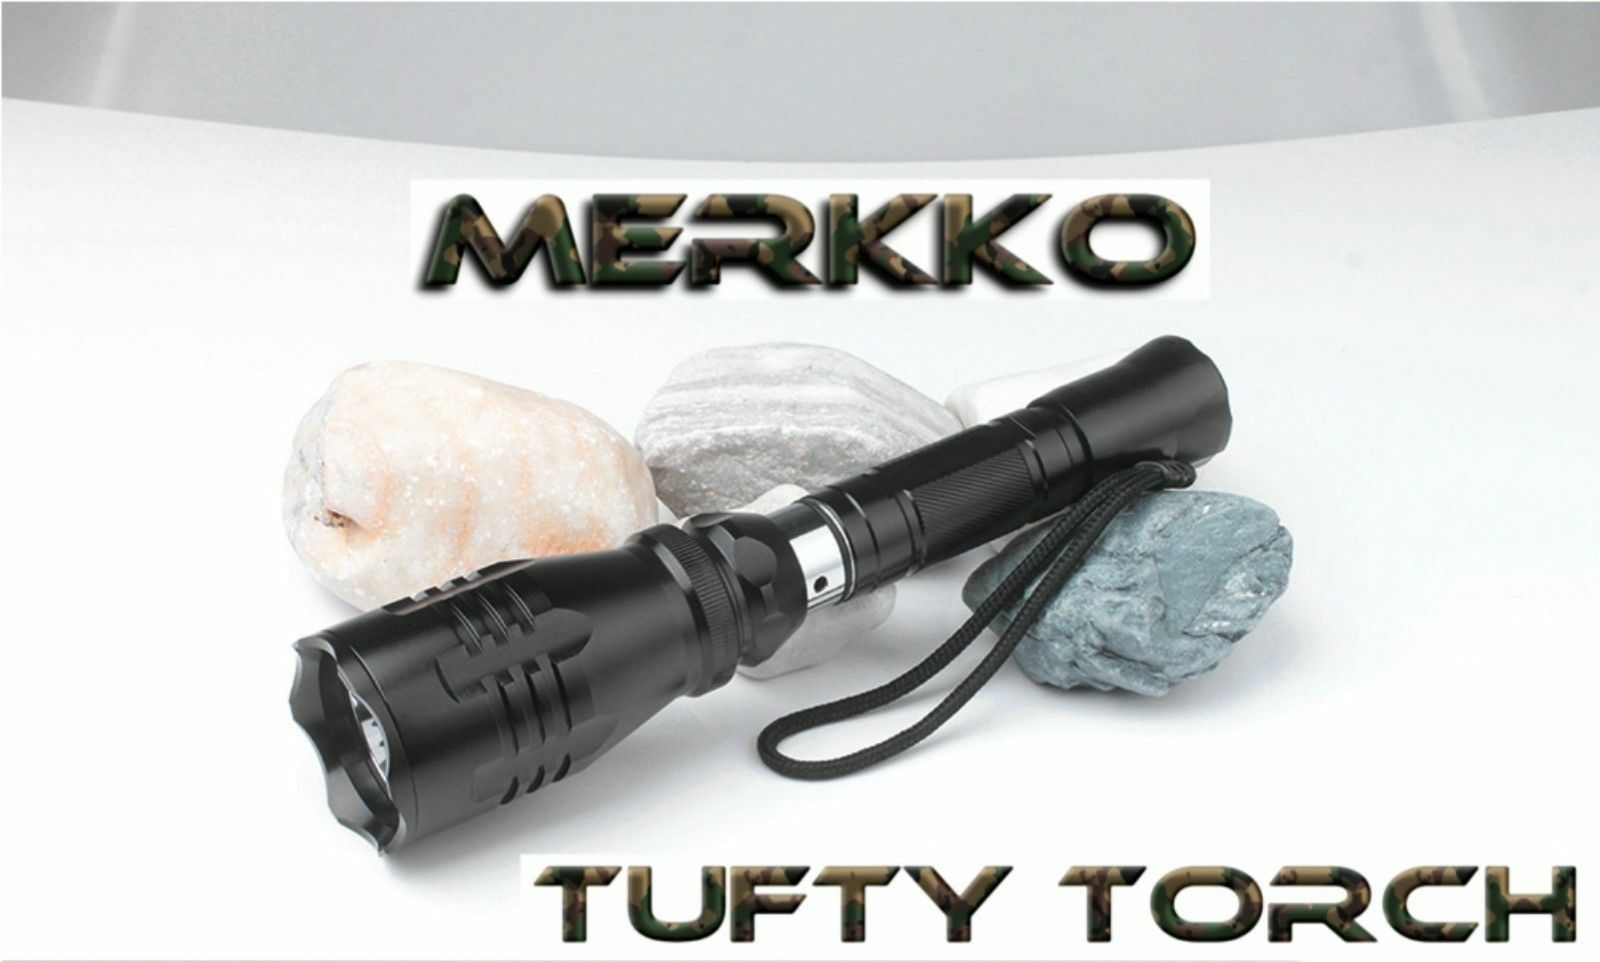 Merkko Tufty Torch NEW Carp Fishing Bird Scaring Torch